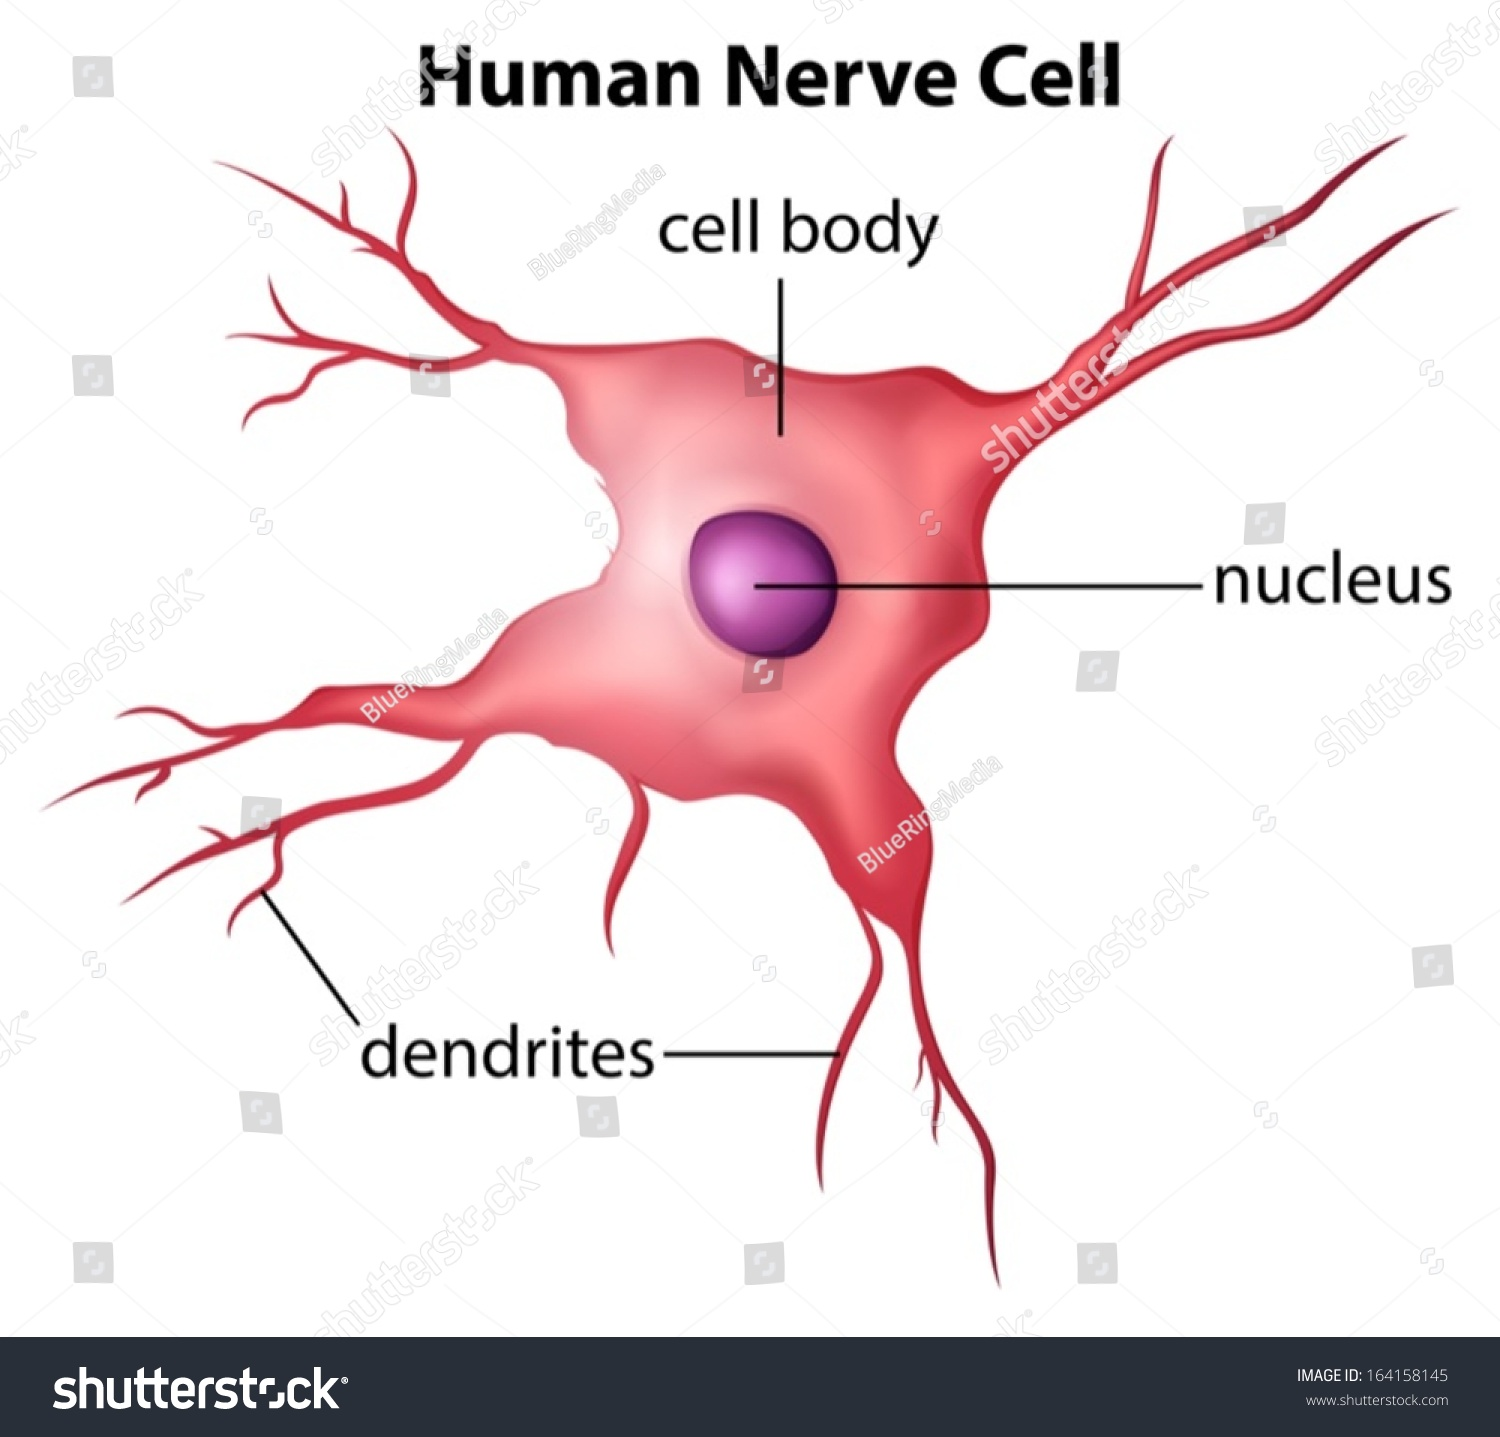 3d nerve cell diagram basic guide wiring diagram illustration human nerve cell on white stock vector 164158145 rh shutterstock com advanced nerve cell diagram nerve cell function ccuart Image collections